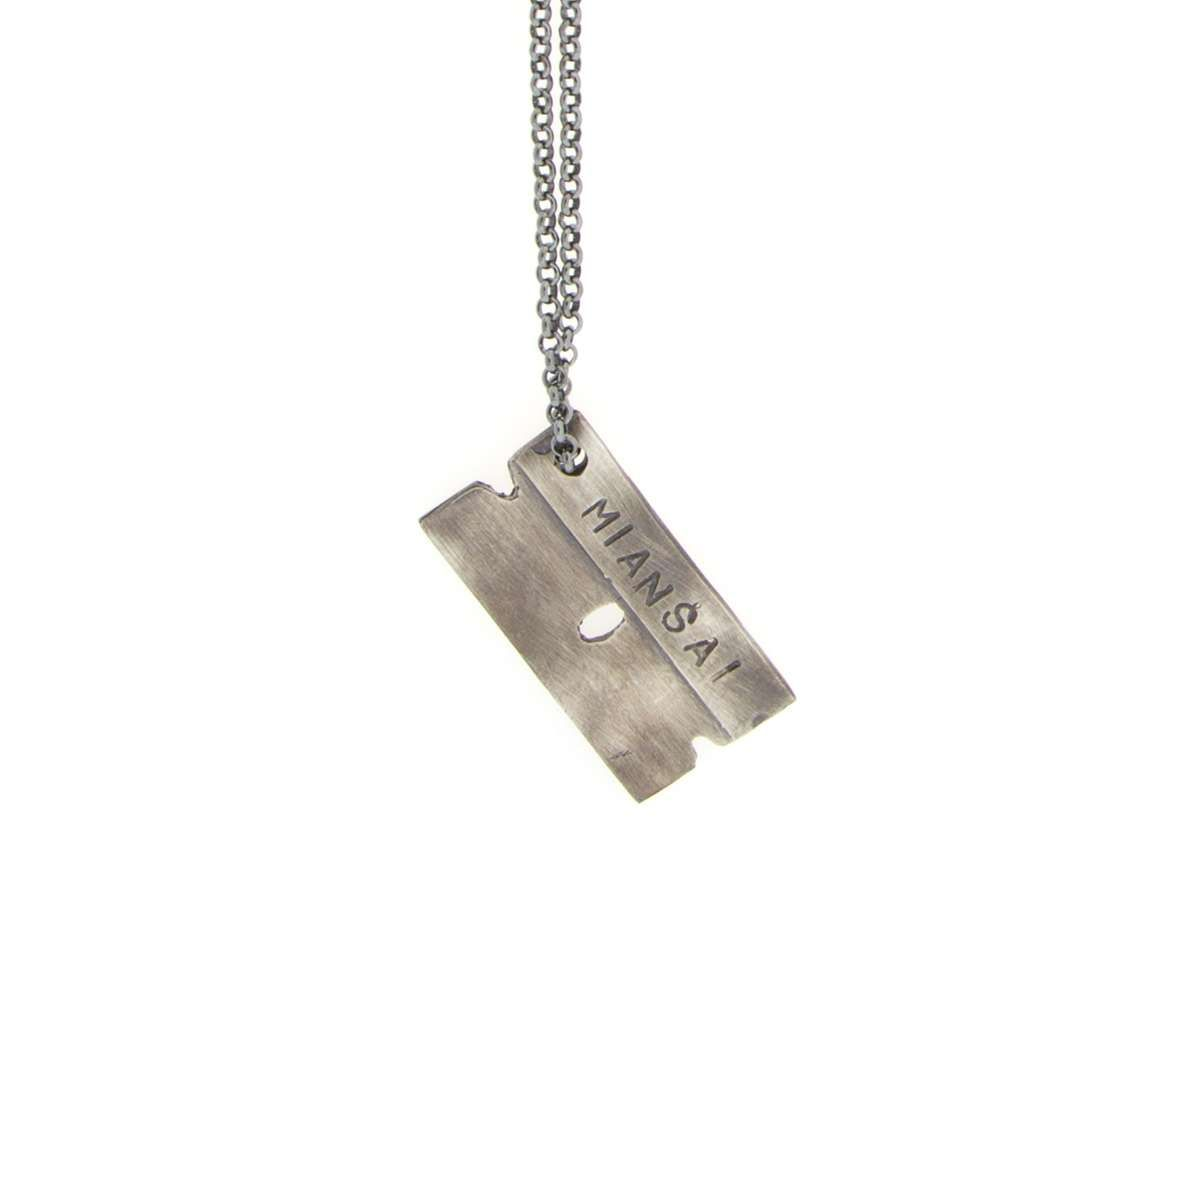 Sterling silver razor blade necklace necklaces pinterest sterling silver razor blade necklace thecheapjerseys Choice Image